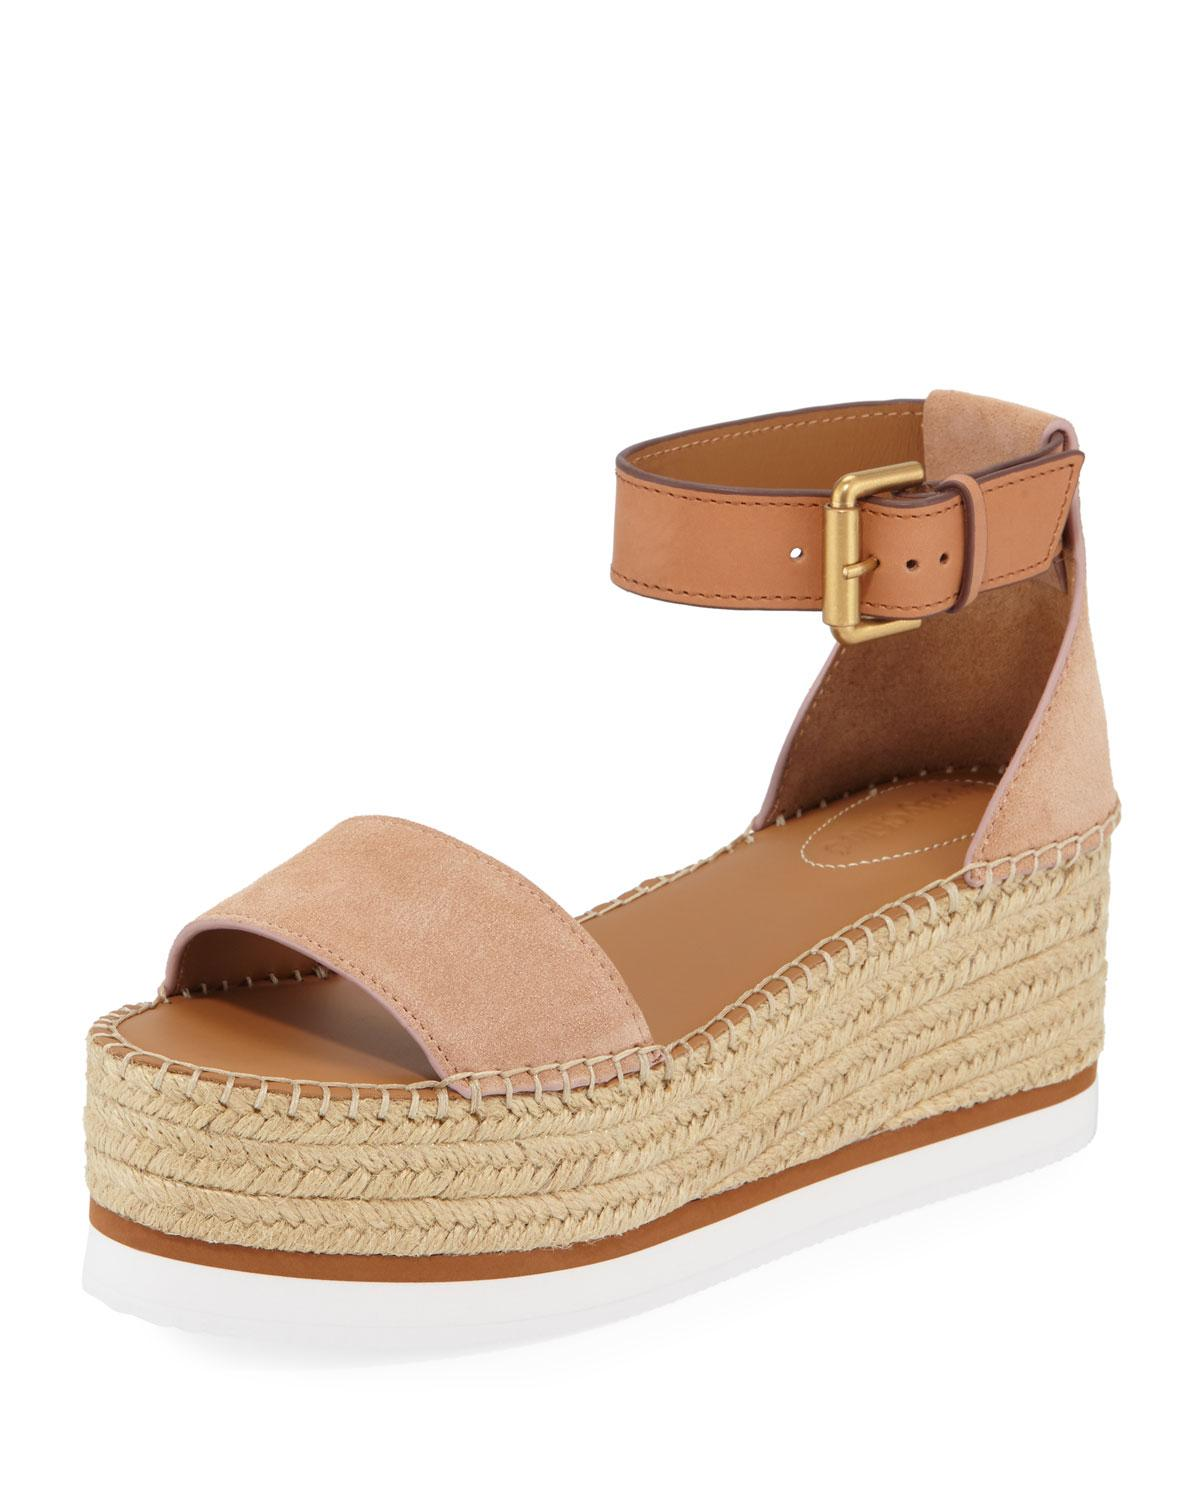 a23730e91 Lyst - See By Chloé Sb32201a Women's Espadrilles / Casual Shoes In ...